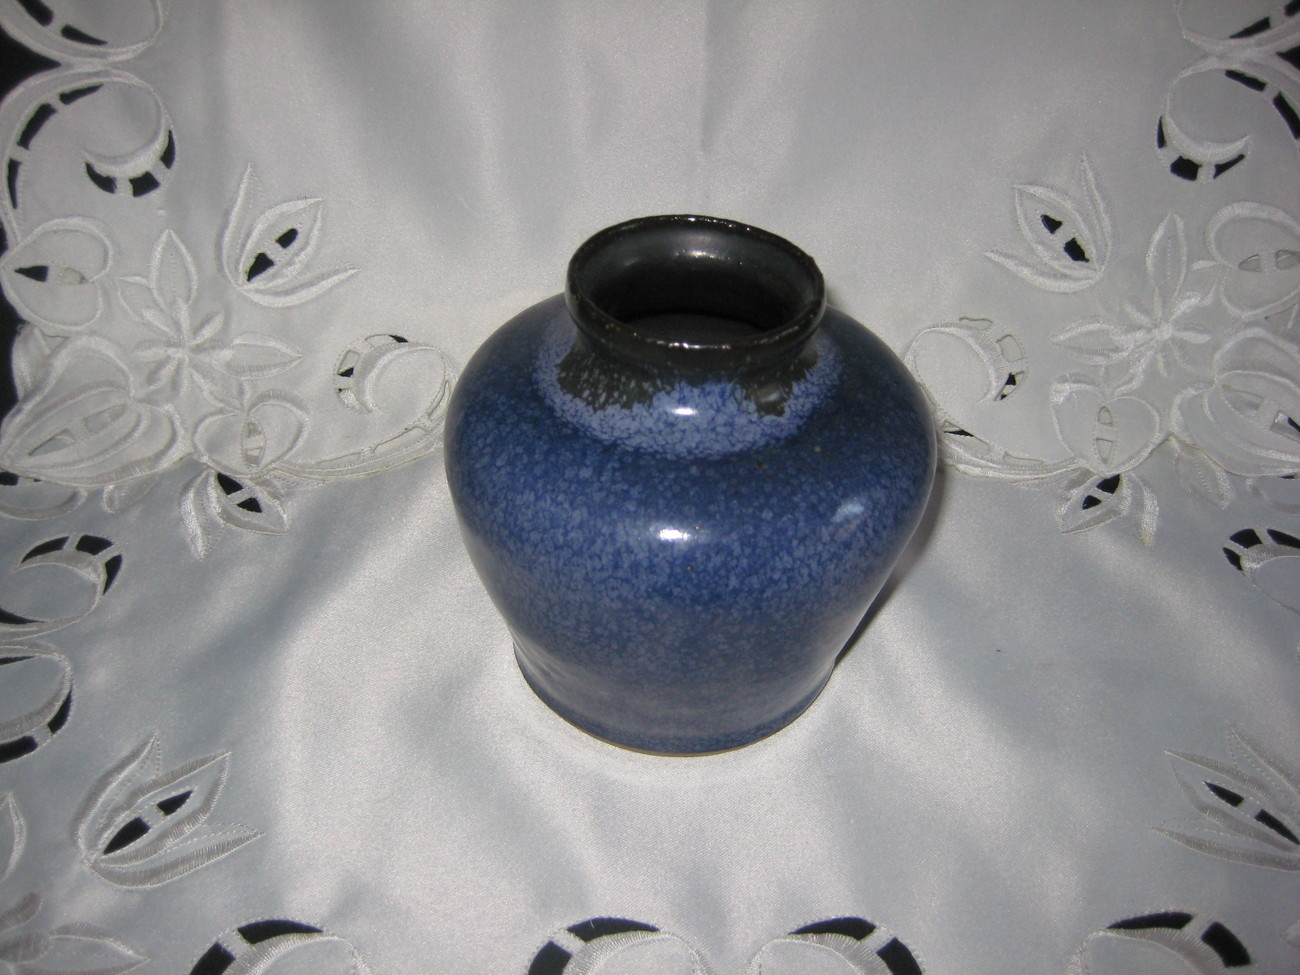 art pottery vase handmade dated and signed by artist